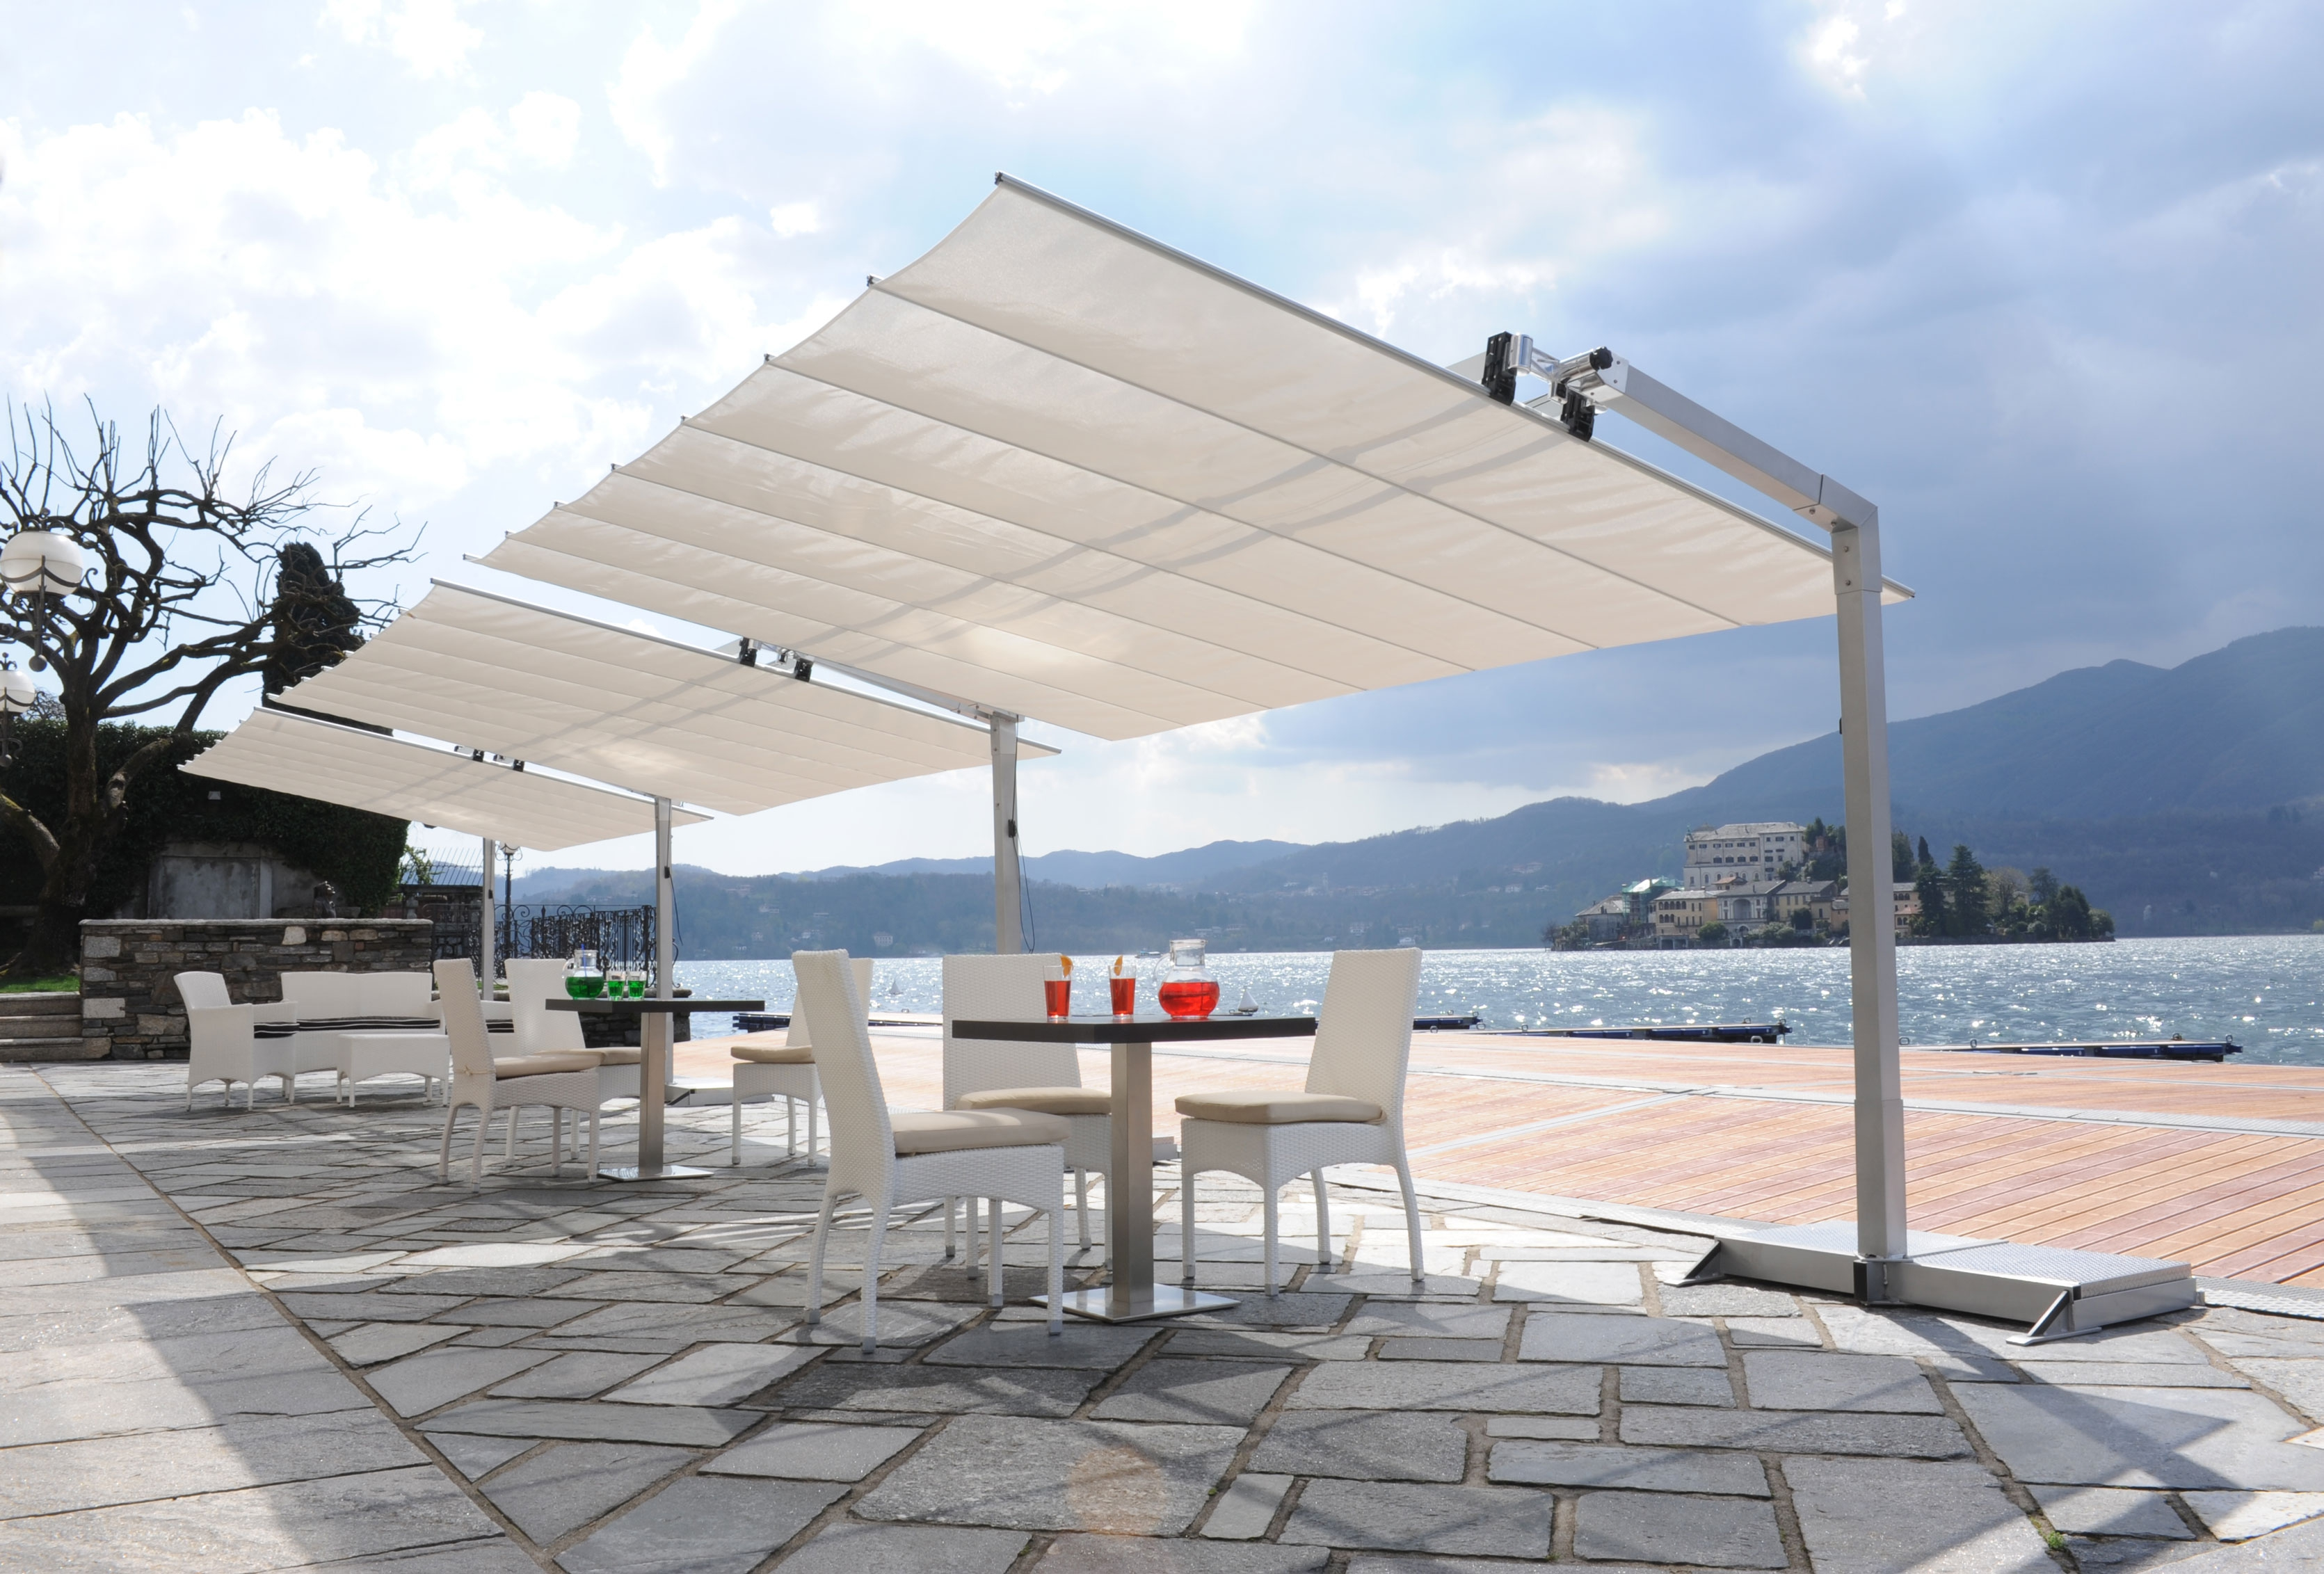 mark imageid undefined freestanding fabric beauty awntech bjs double wholesale sided awning product recipeid profileid richmond retractable club imageservice